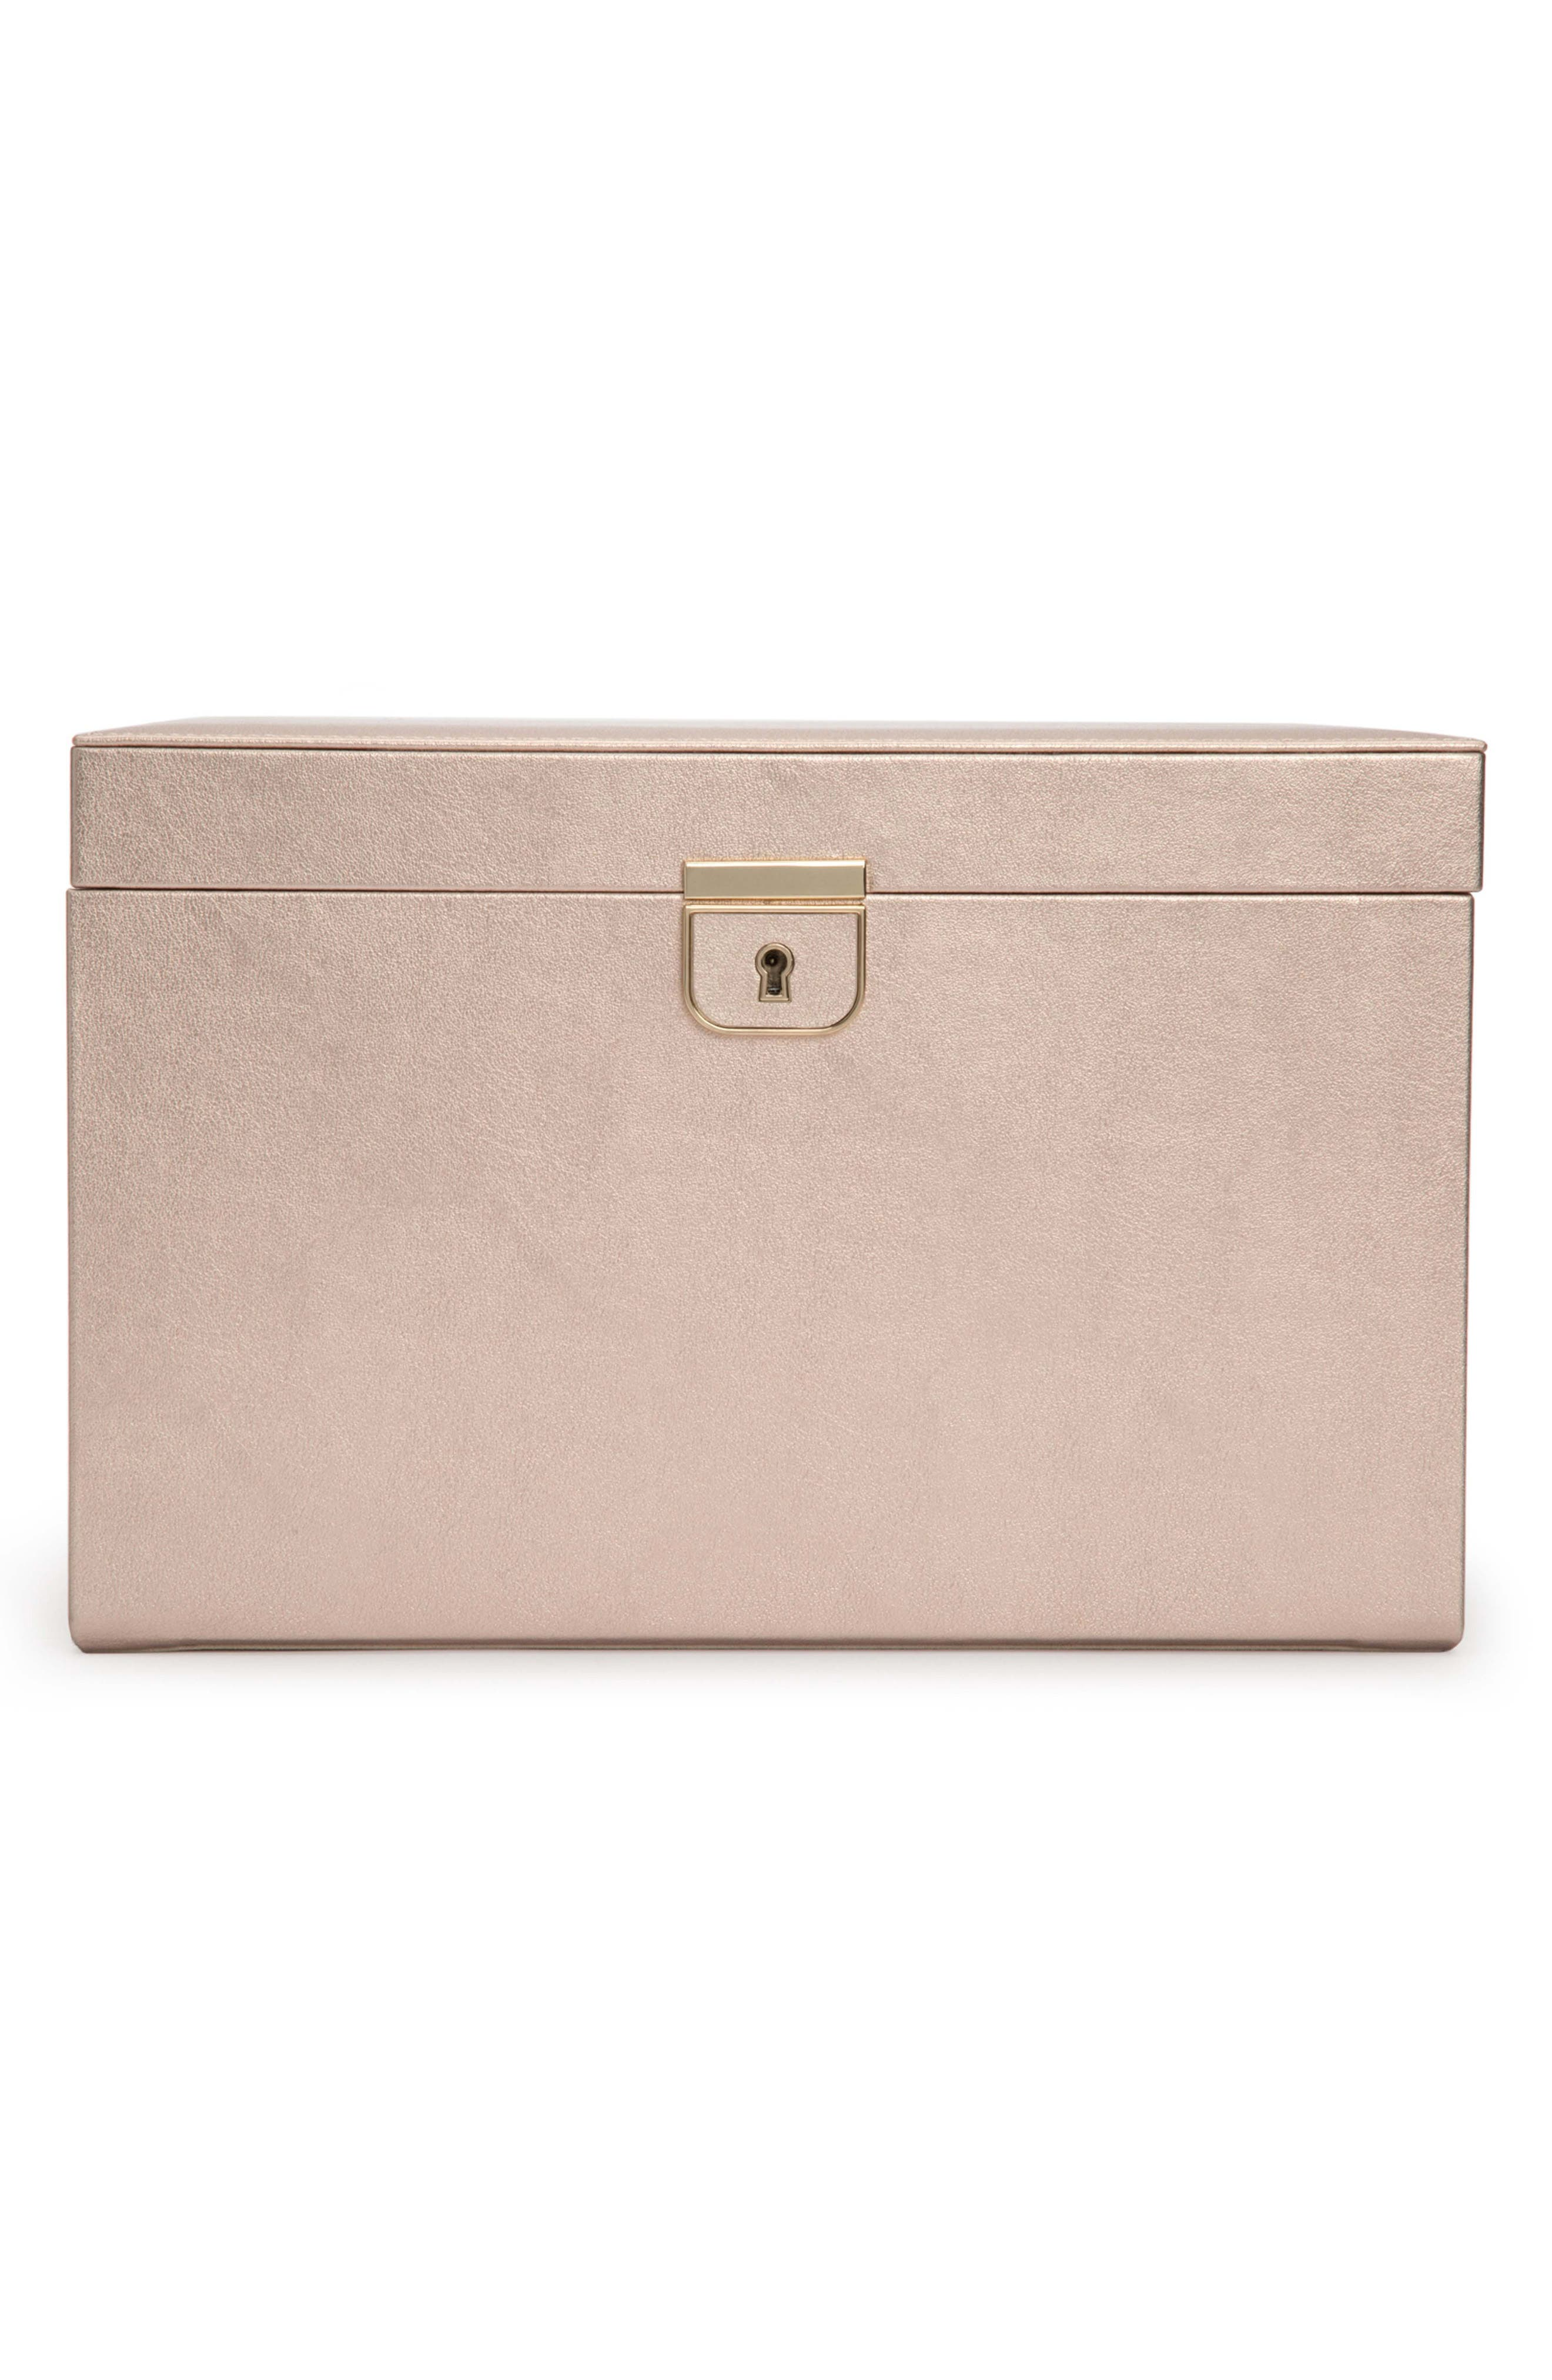 Palermo Large Jewelry Box,                         Main,                         color, ROSE GOLD